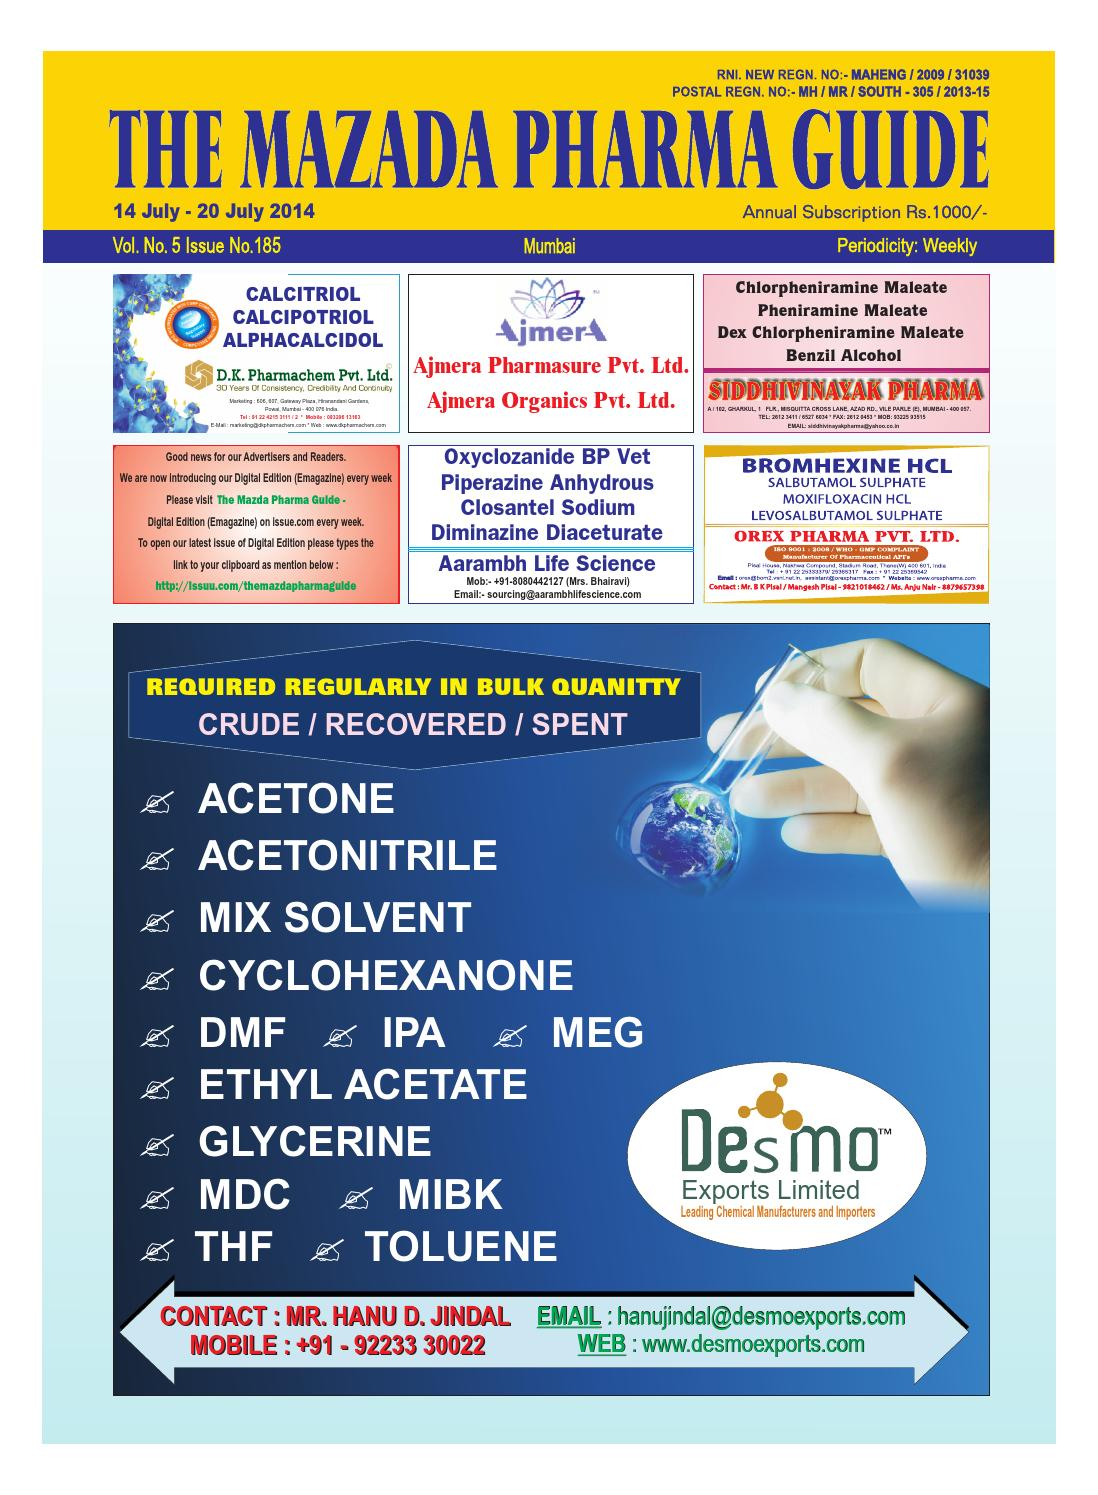 The Mazada Pharma Guide 14th July - 20th July 2014 by The